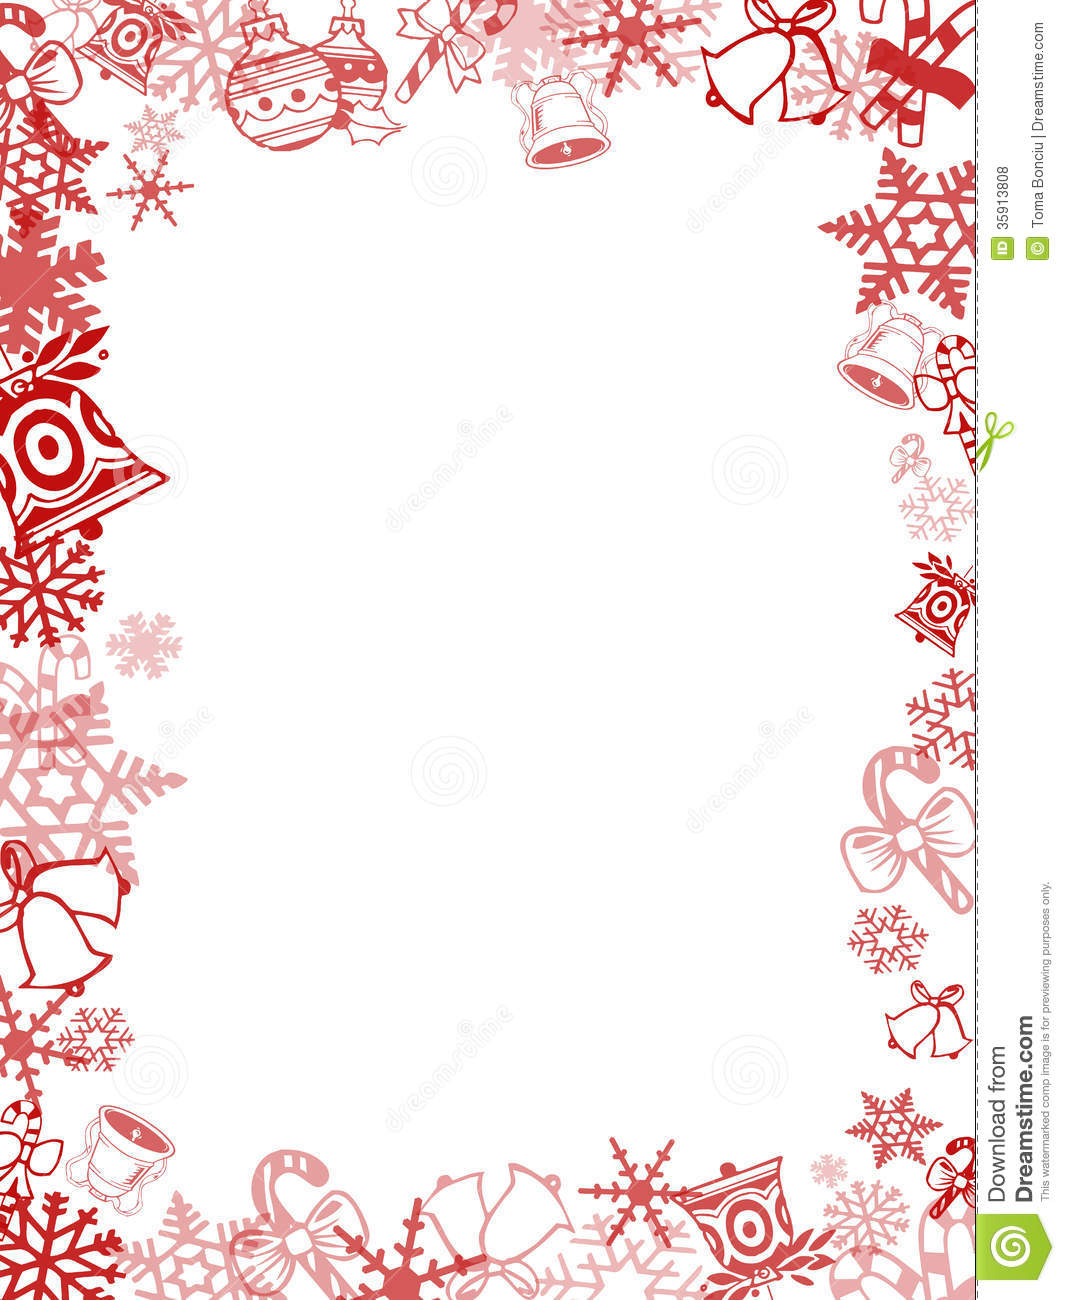 Red Christmas Card Frame Royalty Free Stock Photos - Image: 35913808